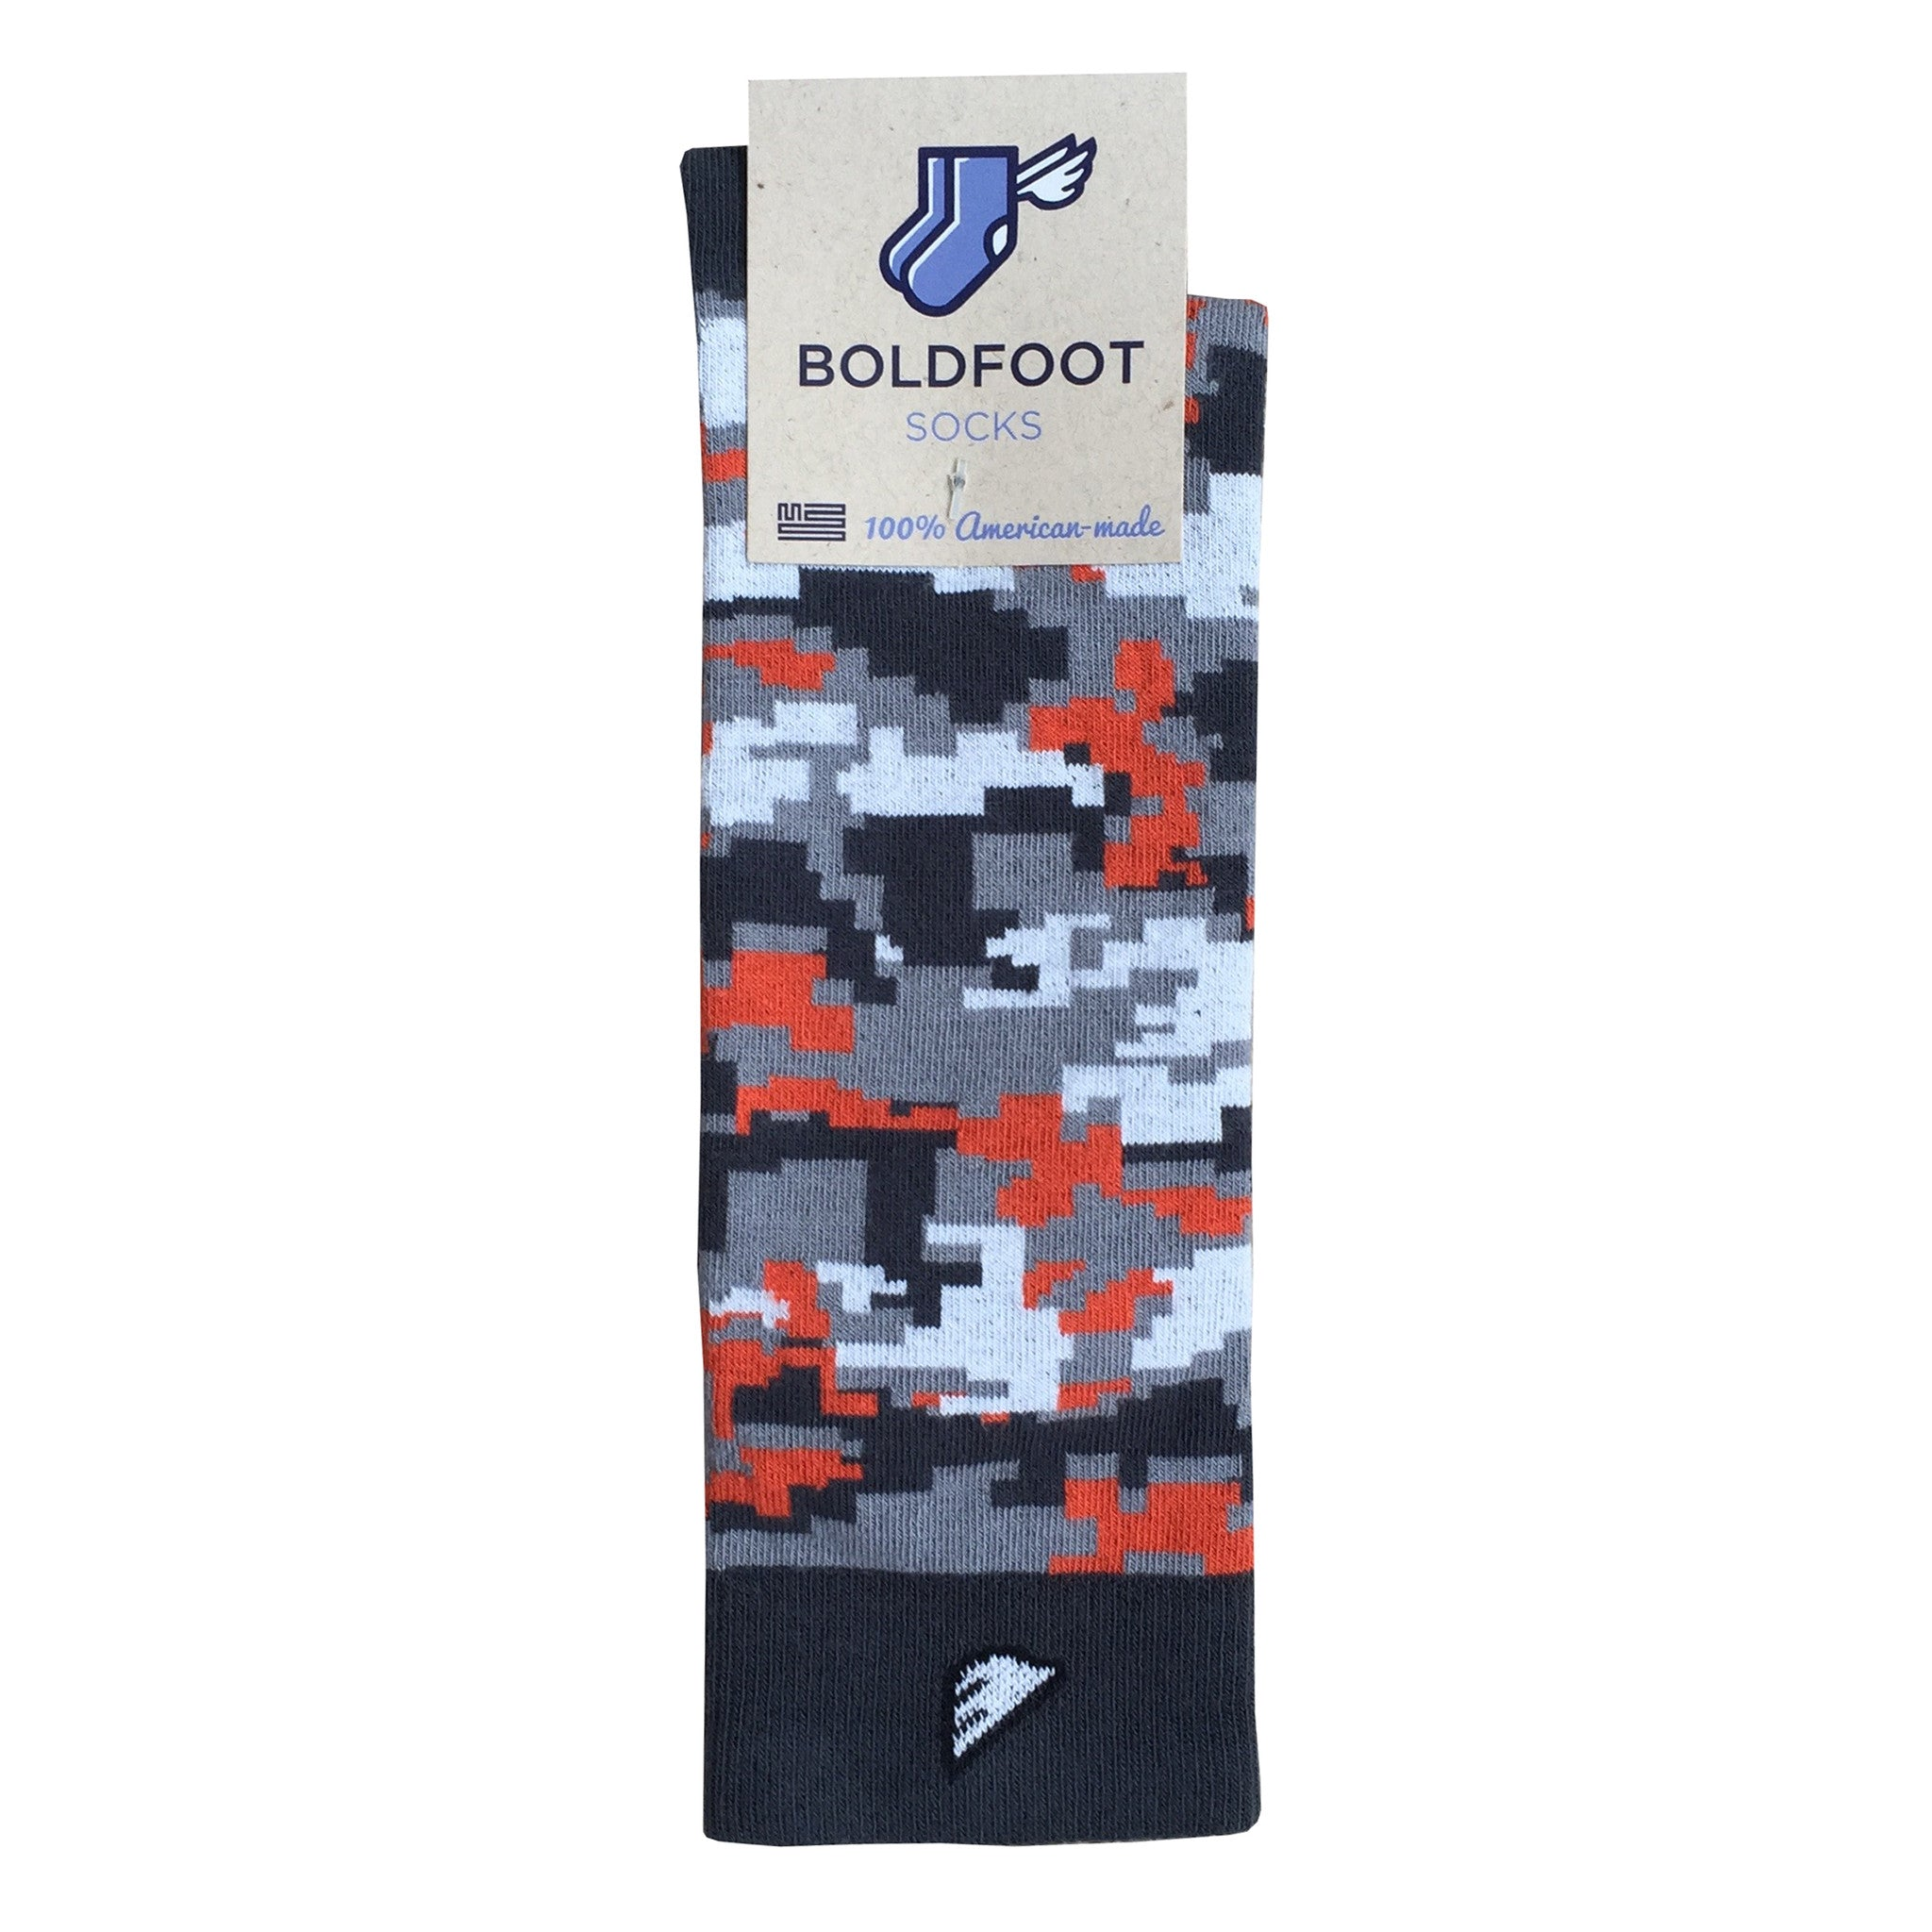 d1fe39896eee Oklahoma State Digital Camo Camouflage Digicamo Quality Fun Unique Crazy Dress  Casual Socks Orange Grey White